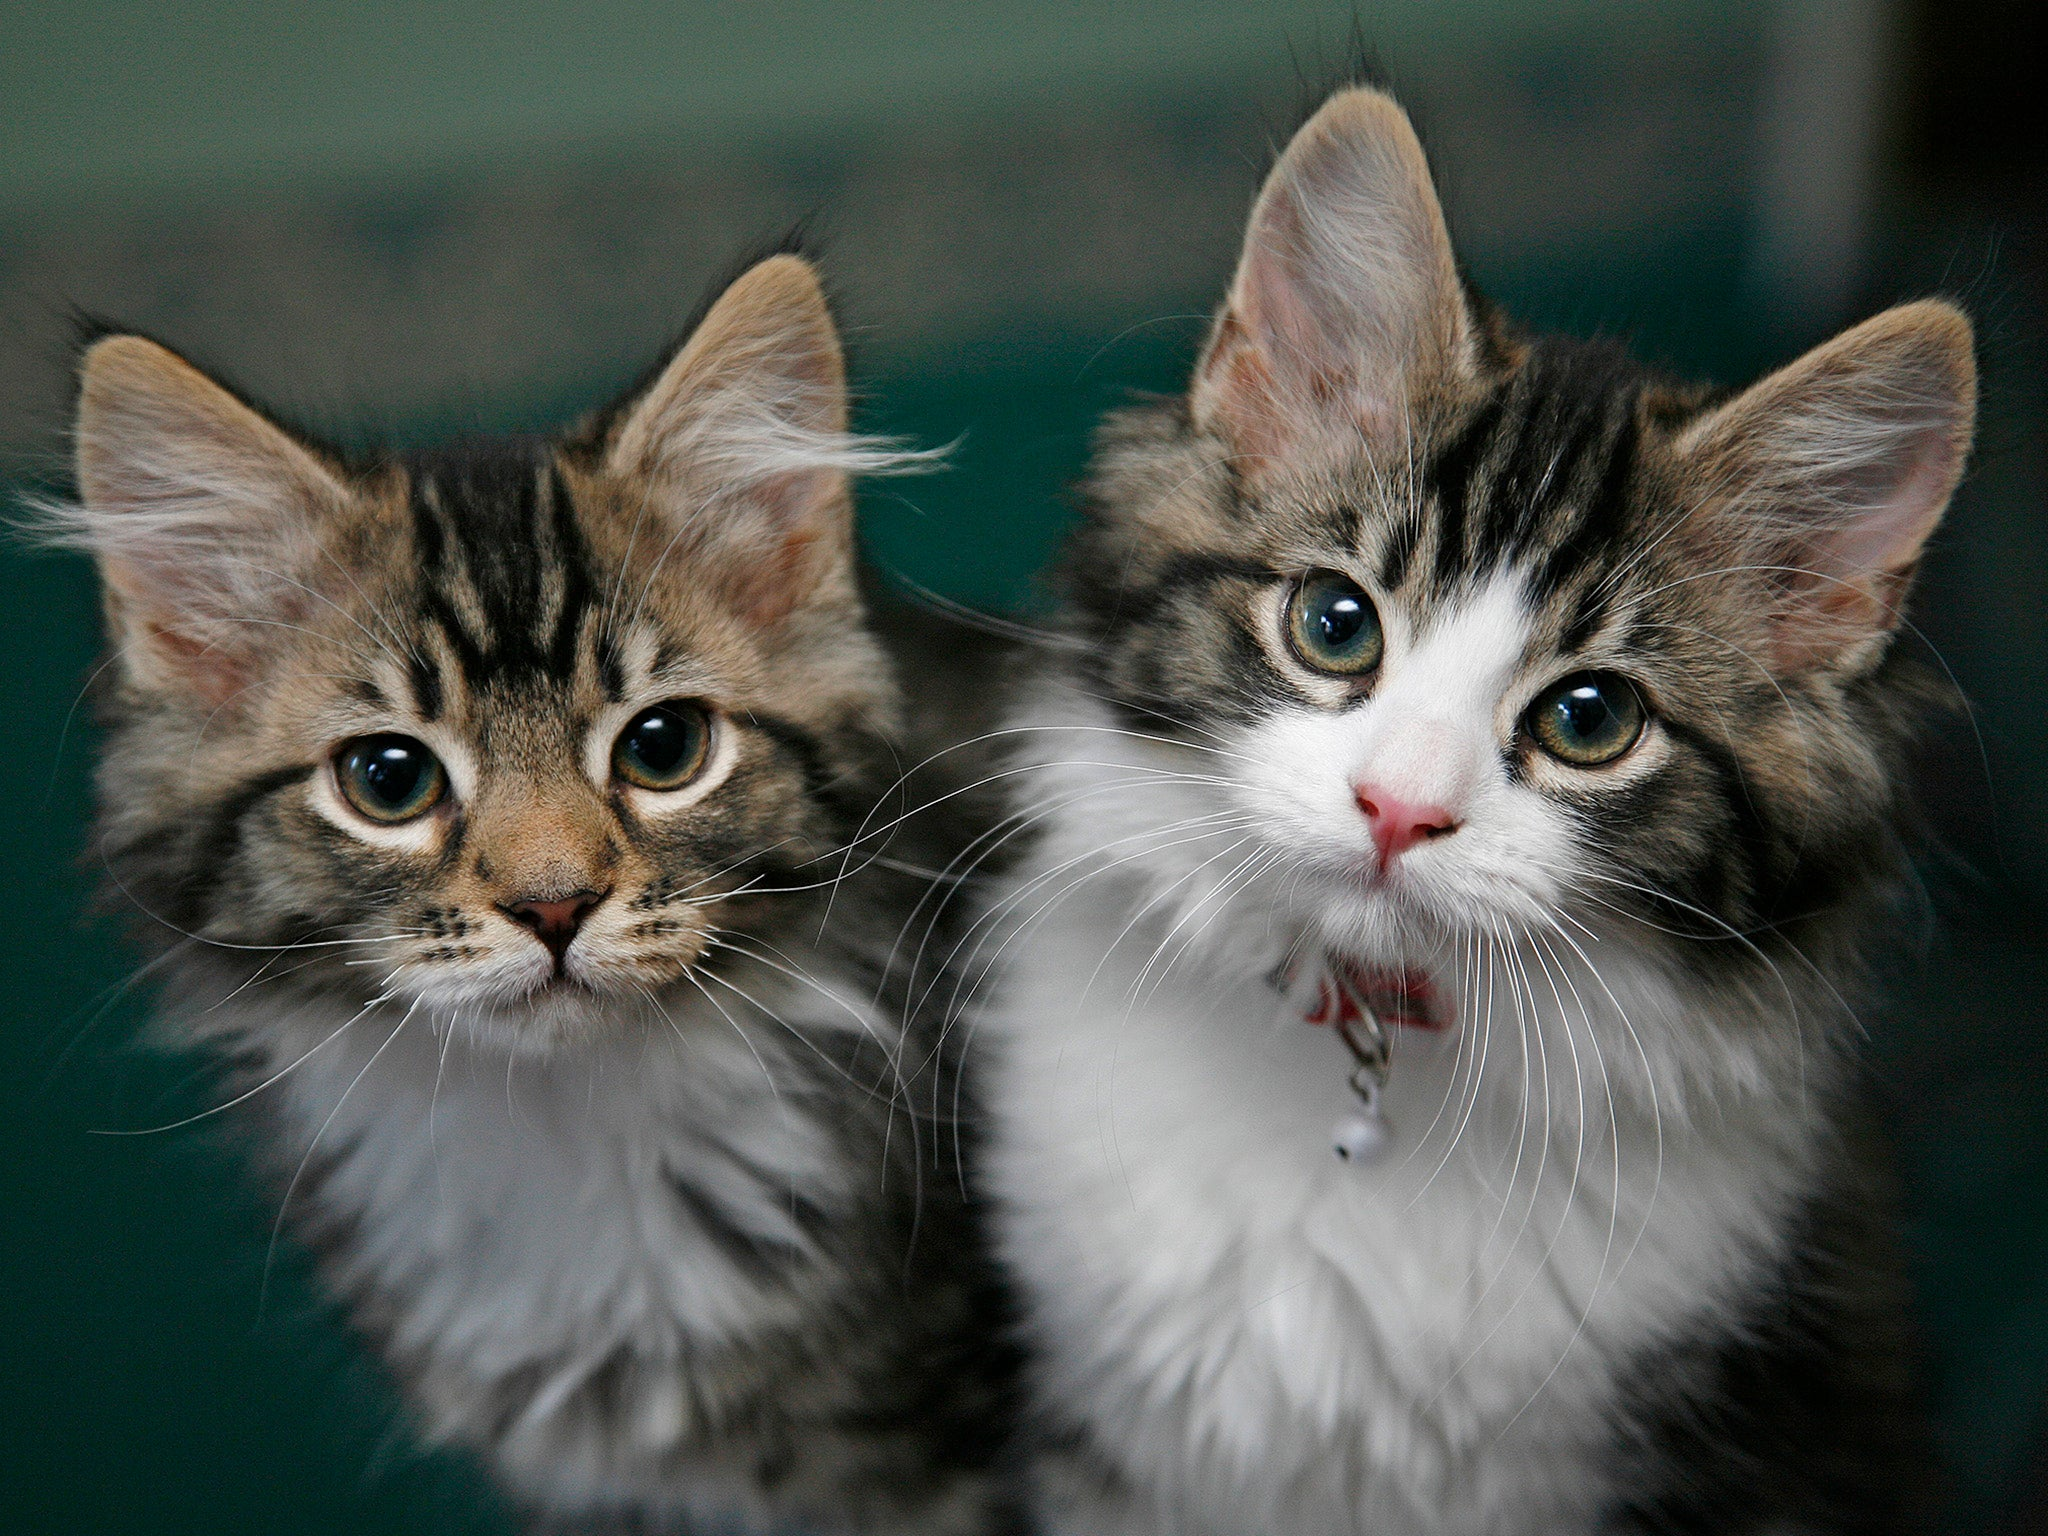 US Government 'killed Thousands Of Kittens' As Part Of